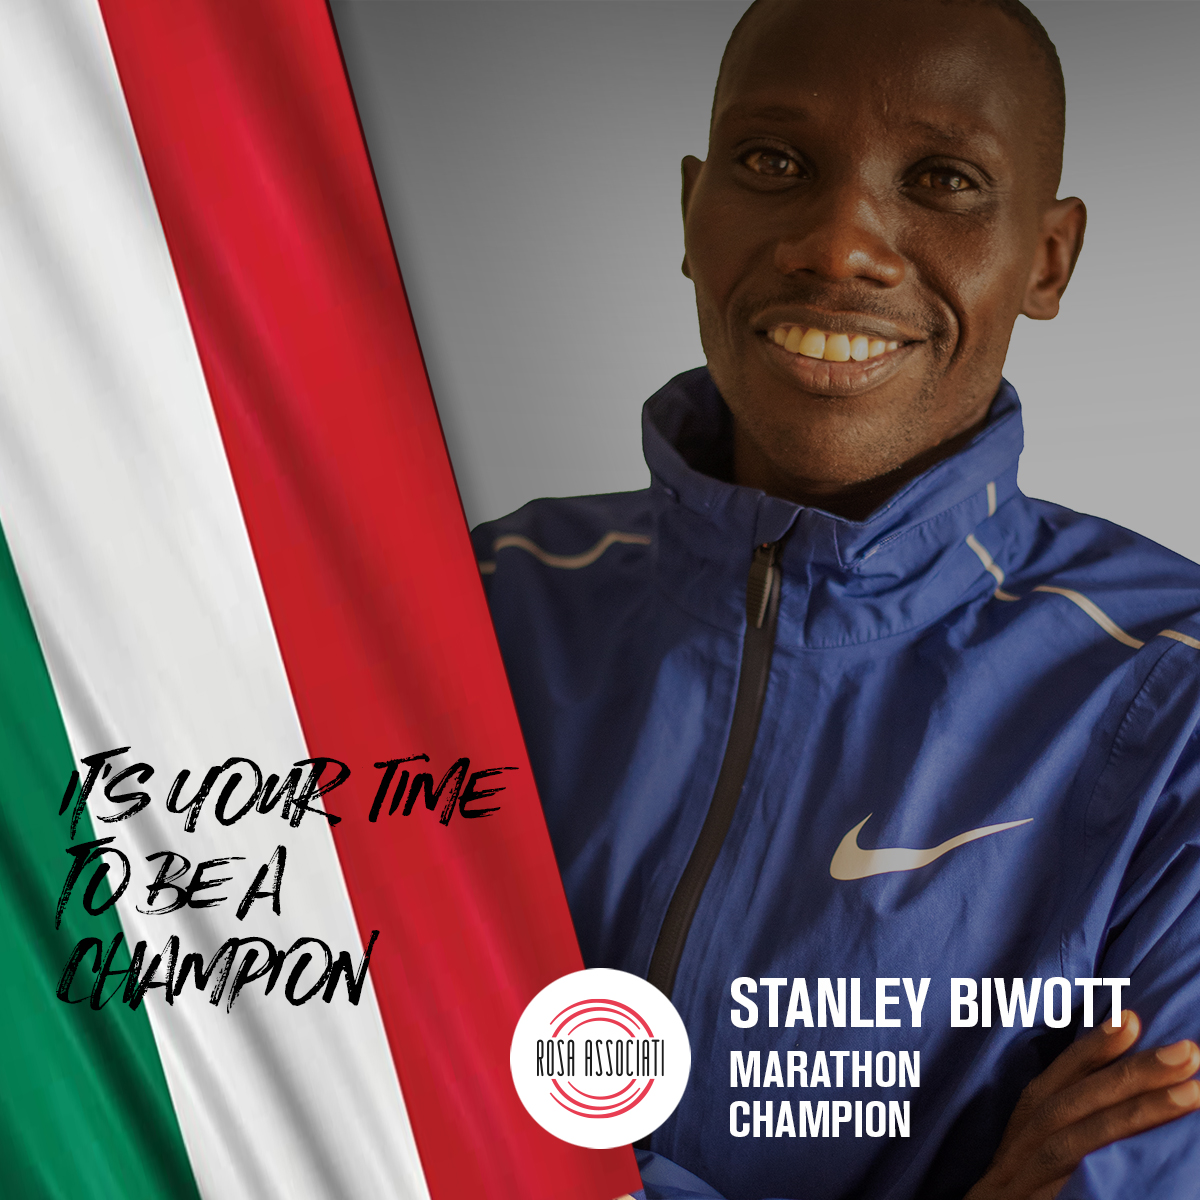 21 2020 - Campagna social We can win this race together-Stanley Biwott